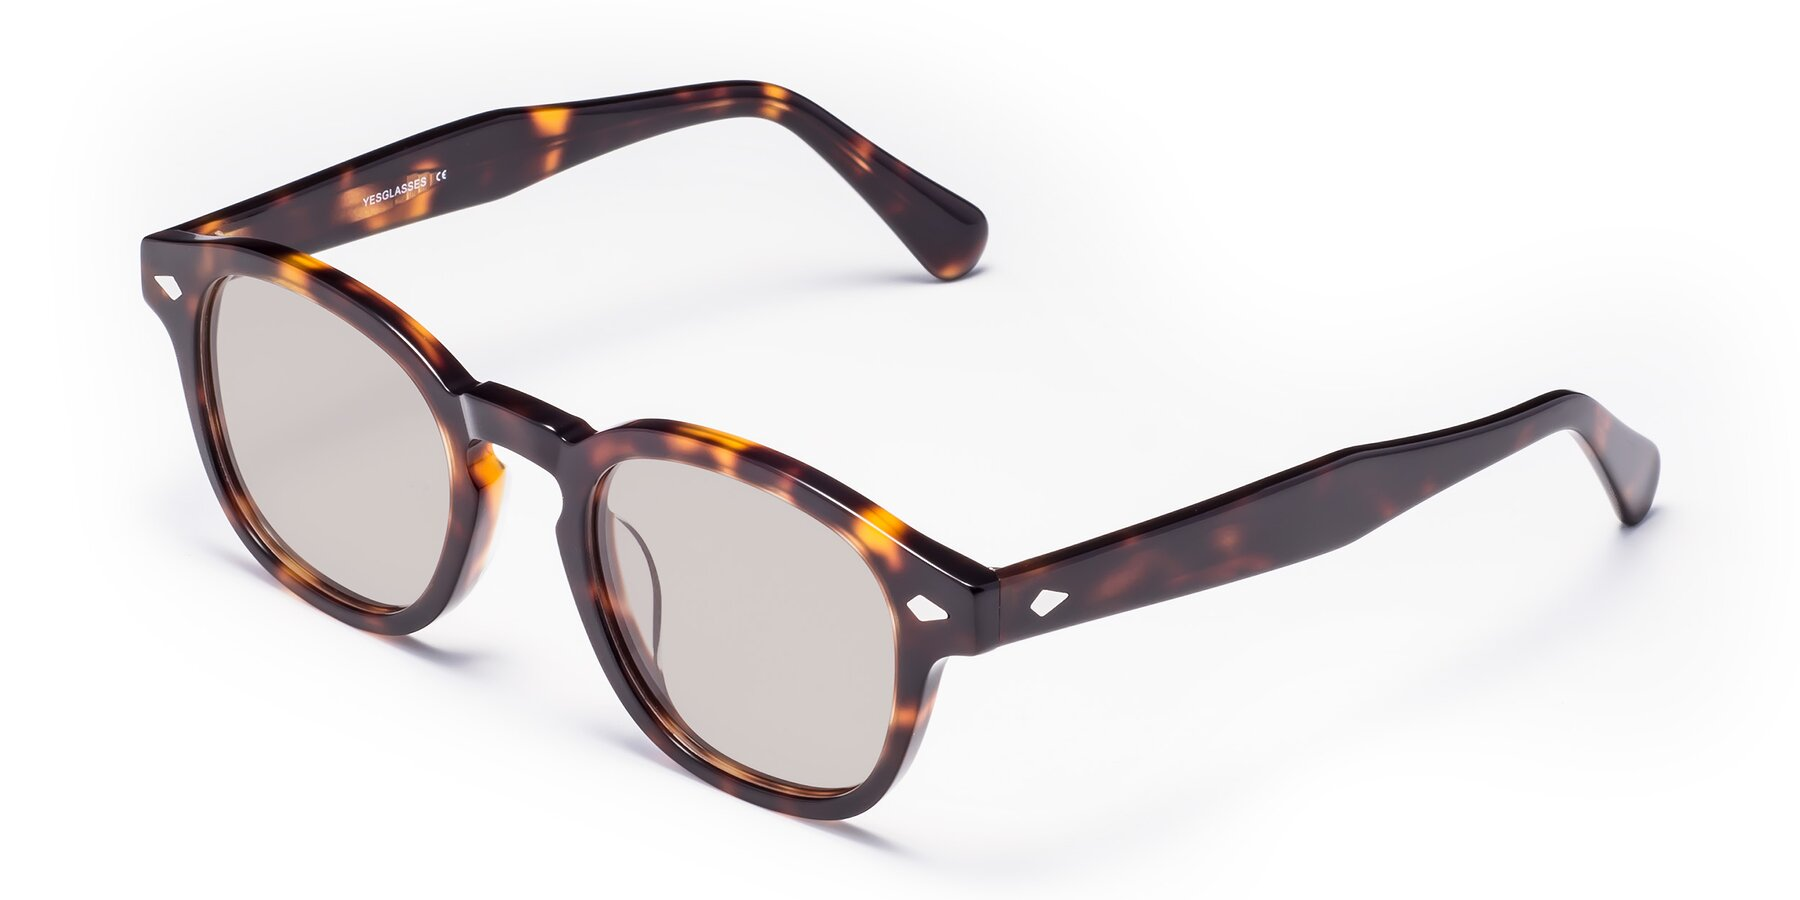 Angle of WALL-E in Tortoise with Light Brown Tinted Lenses